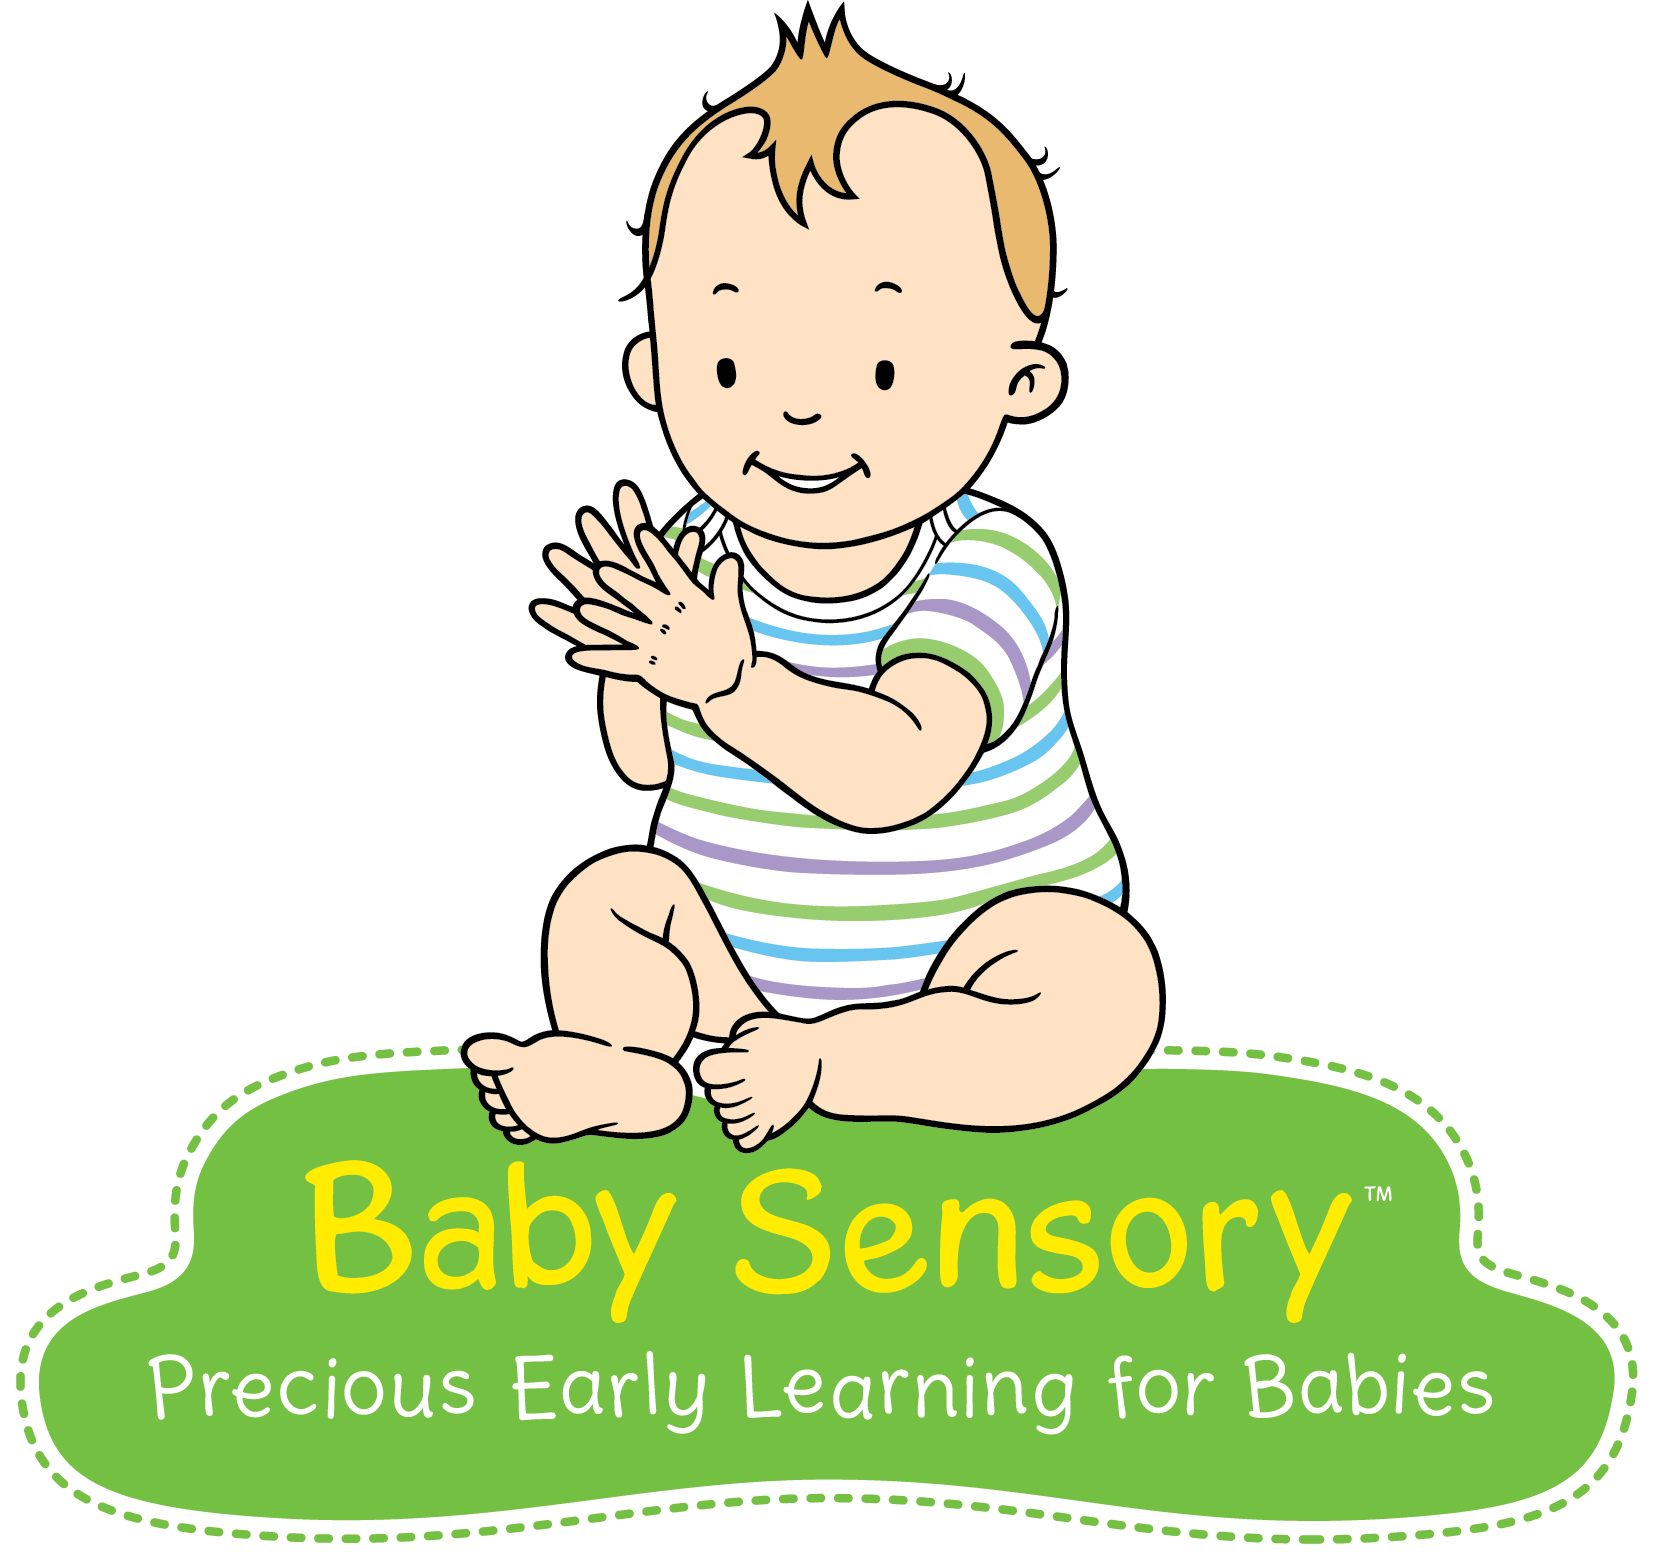 Baby with crown clipart png transparent Baby Sensory - Eddie Catz png transparent